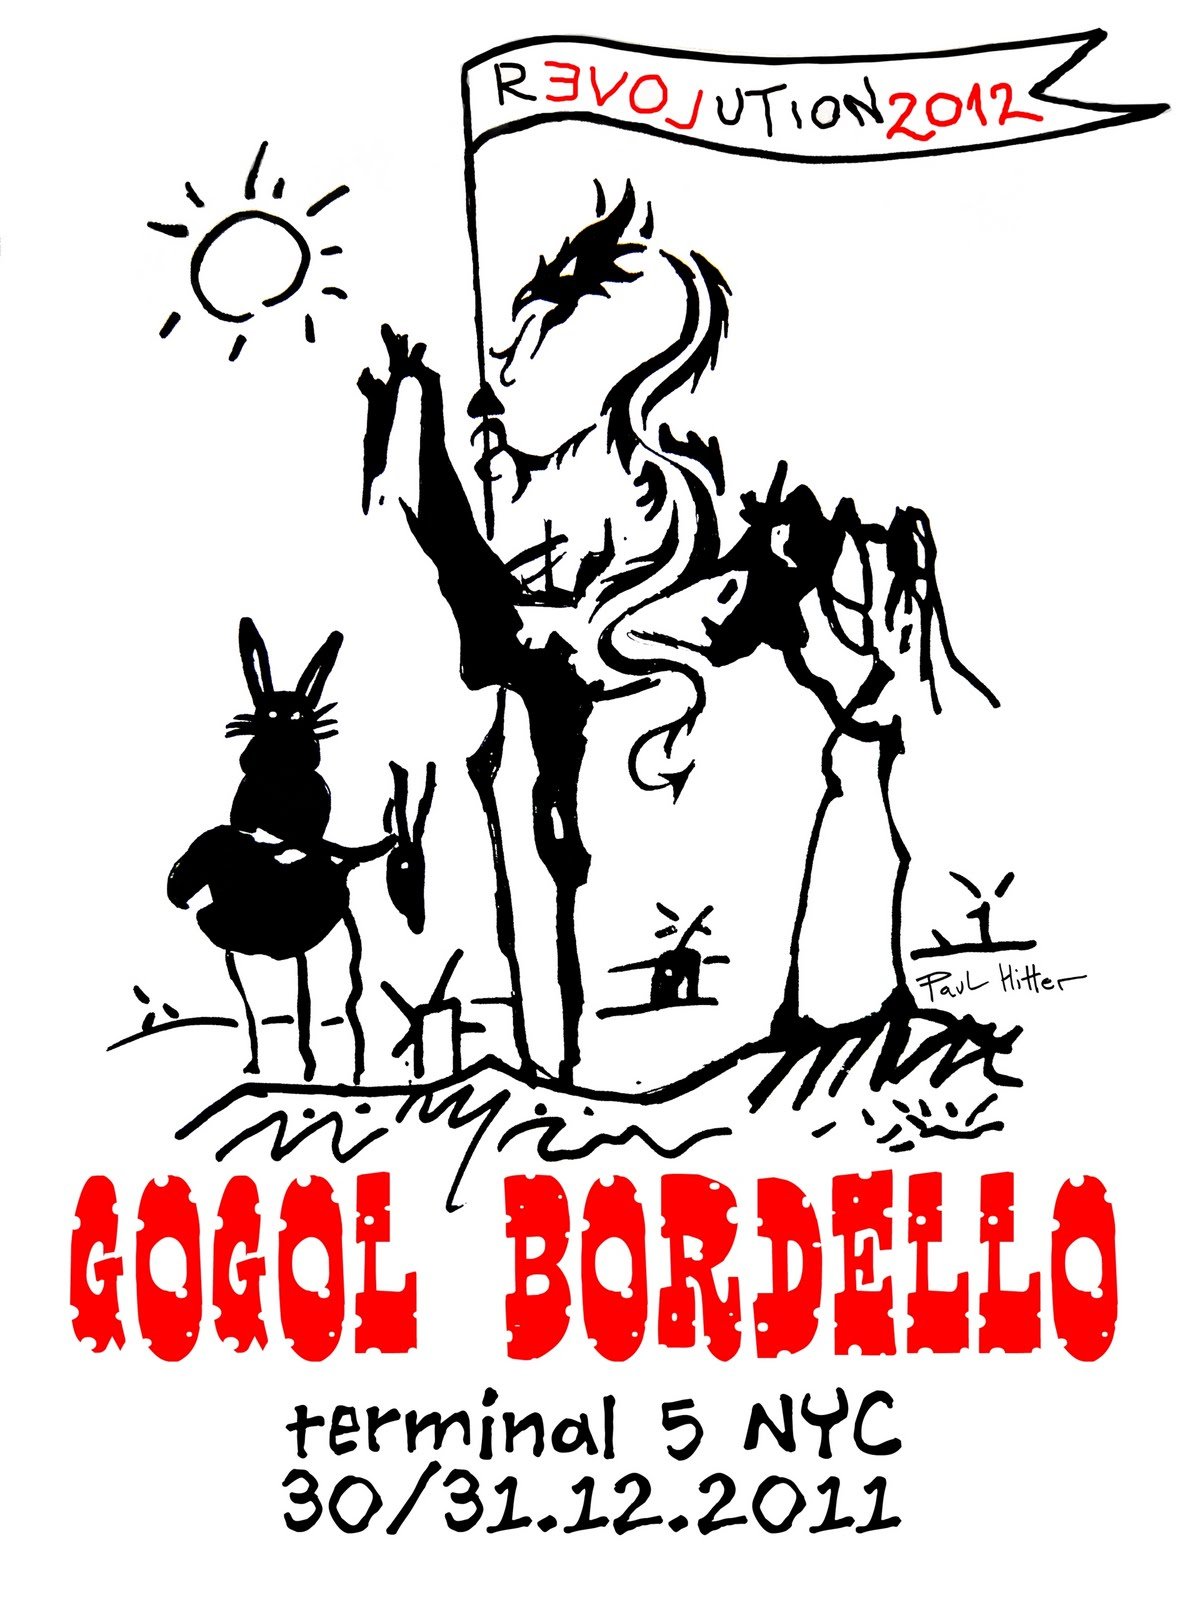 One And Only Paul Hitter: poster for Gogol Bordello new years eve ...